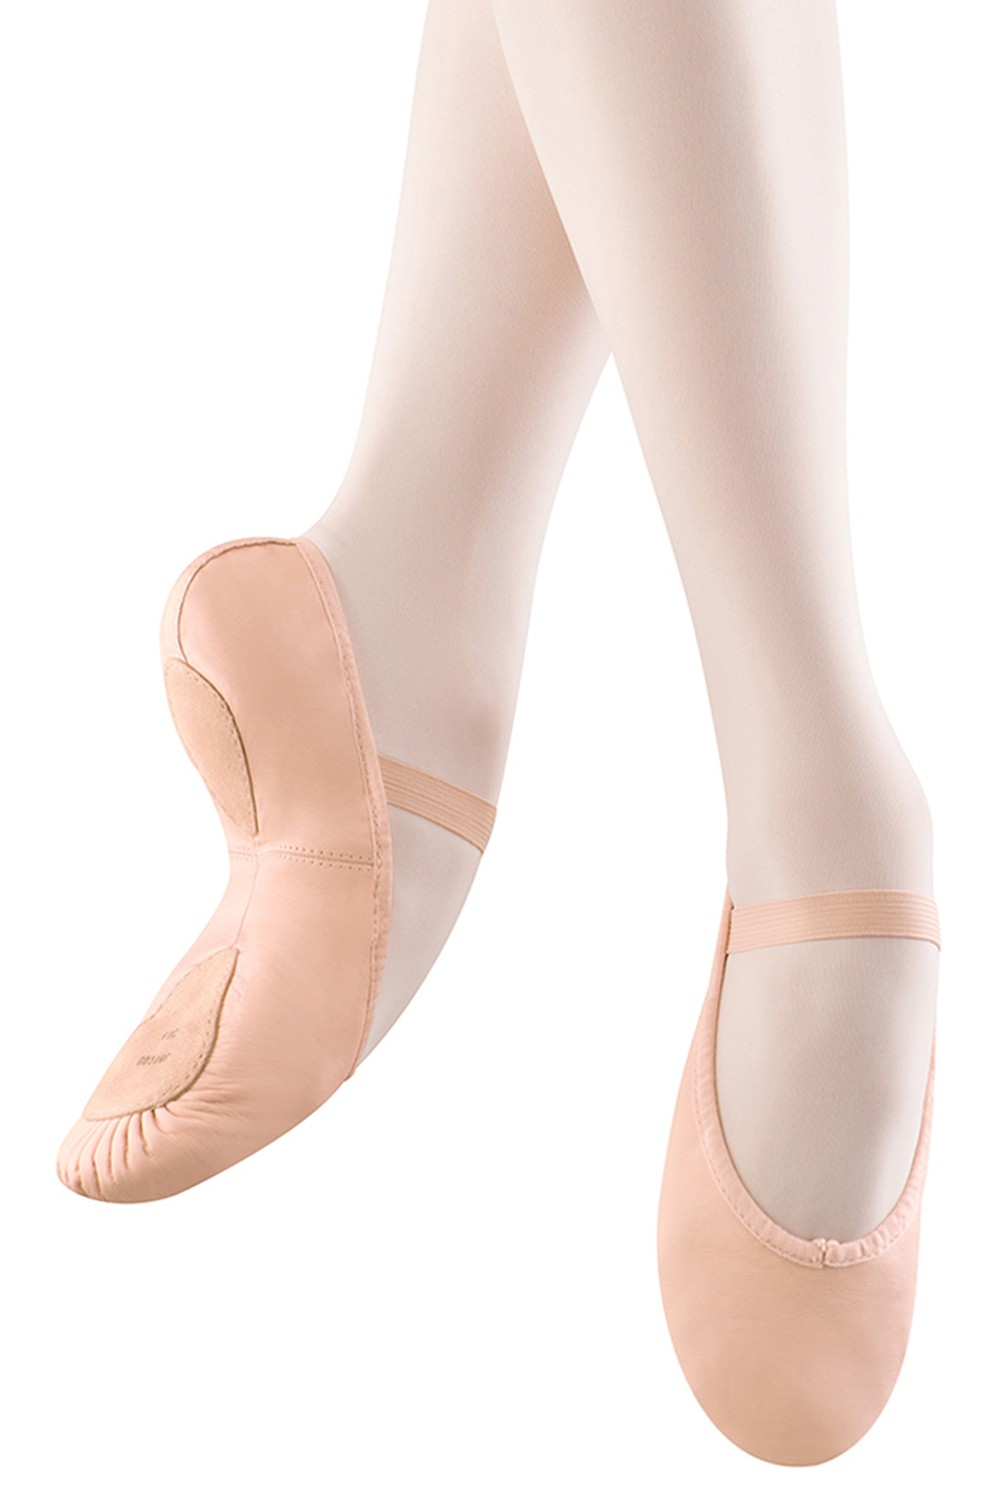 Arise Bi-semelles - Fille Girl's Ballet Shoes